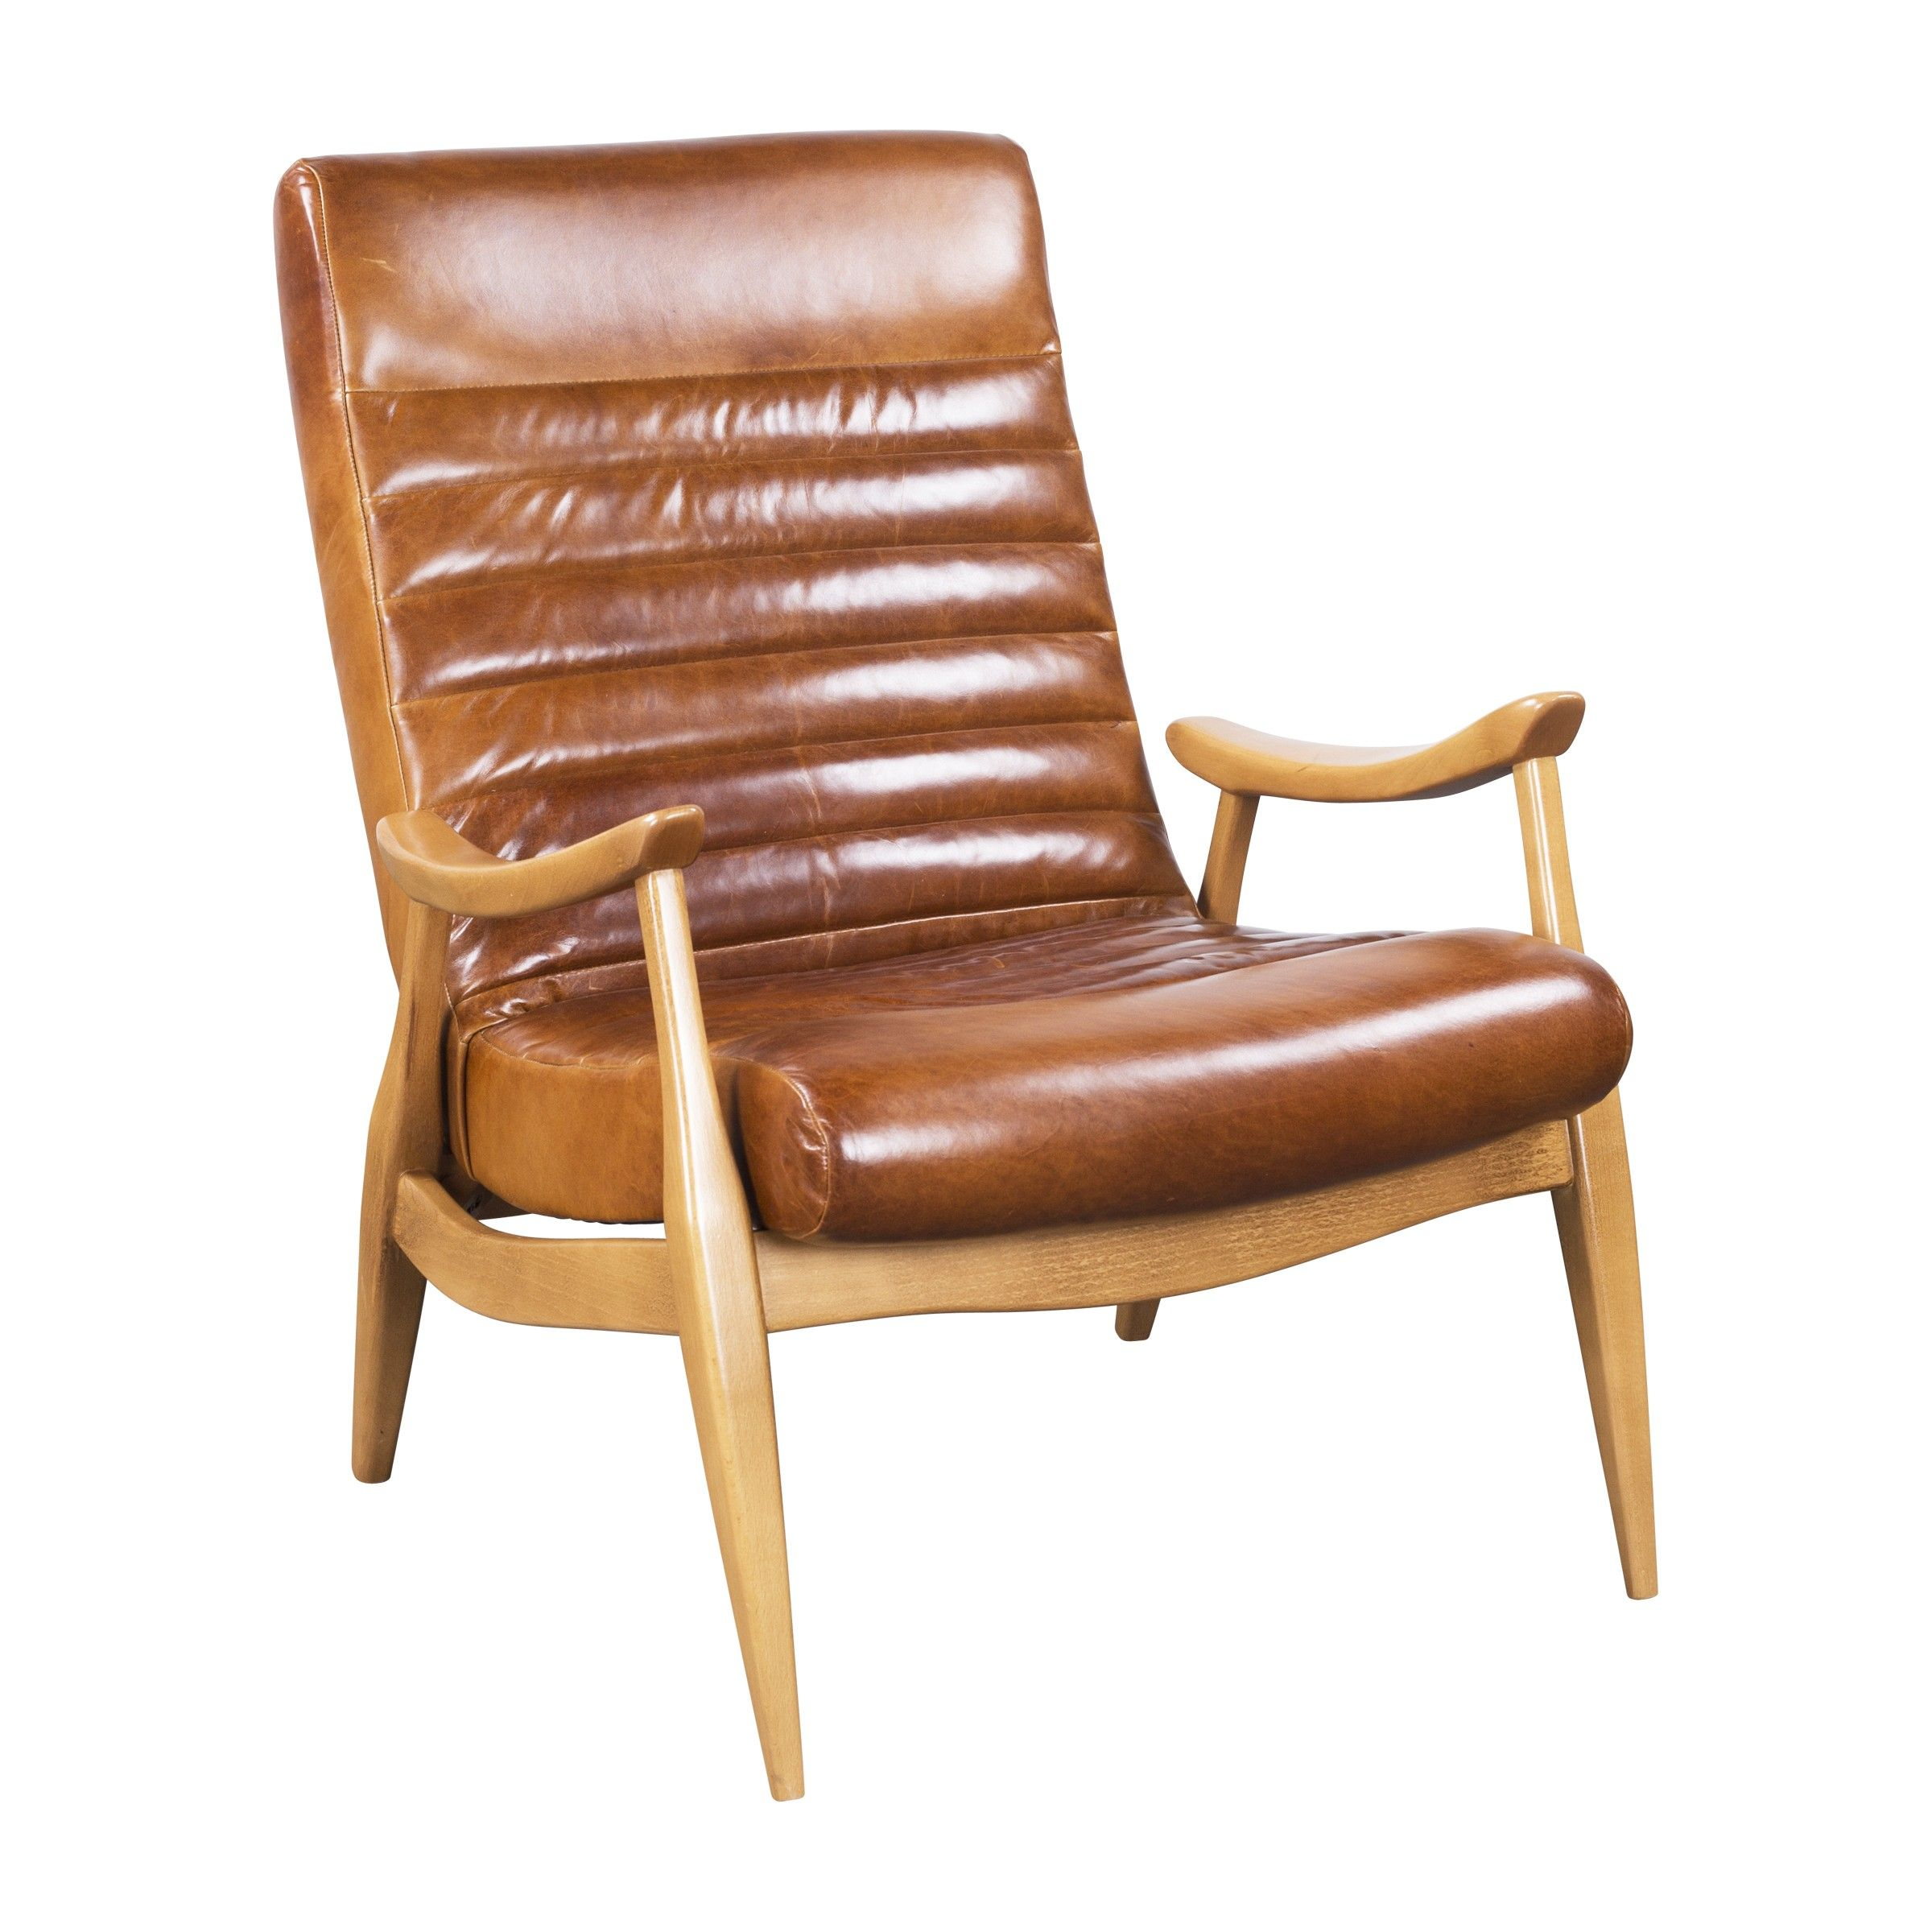 HANS CARAMEL LEATHER CHAIR by Dwell Studio | Accent chairs ...